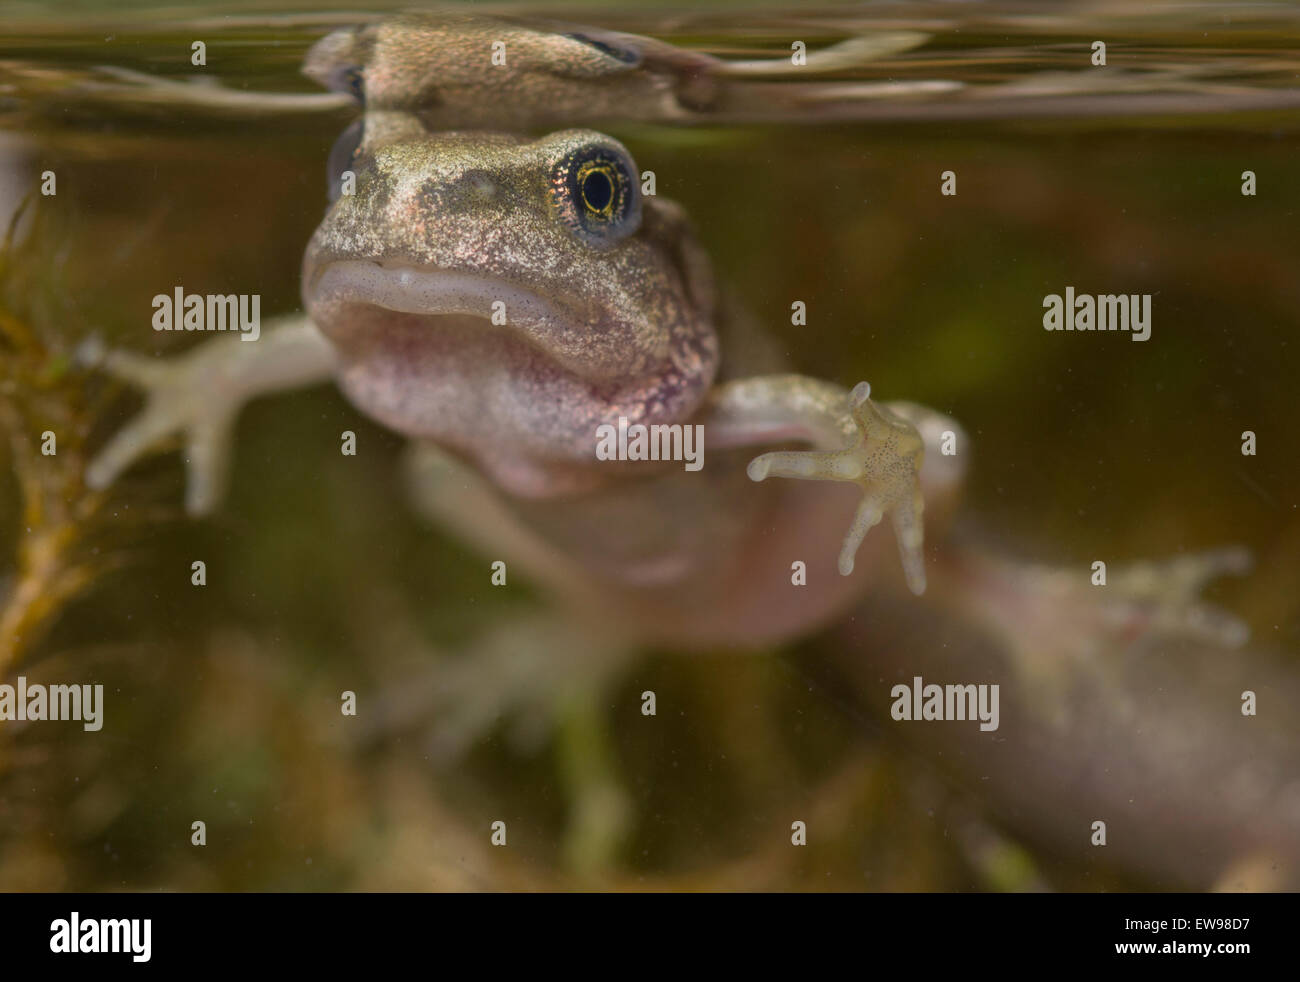 Common frog tadpole froglet Rana temporaria taken in photographic aquarium - Stock Image